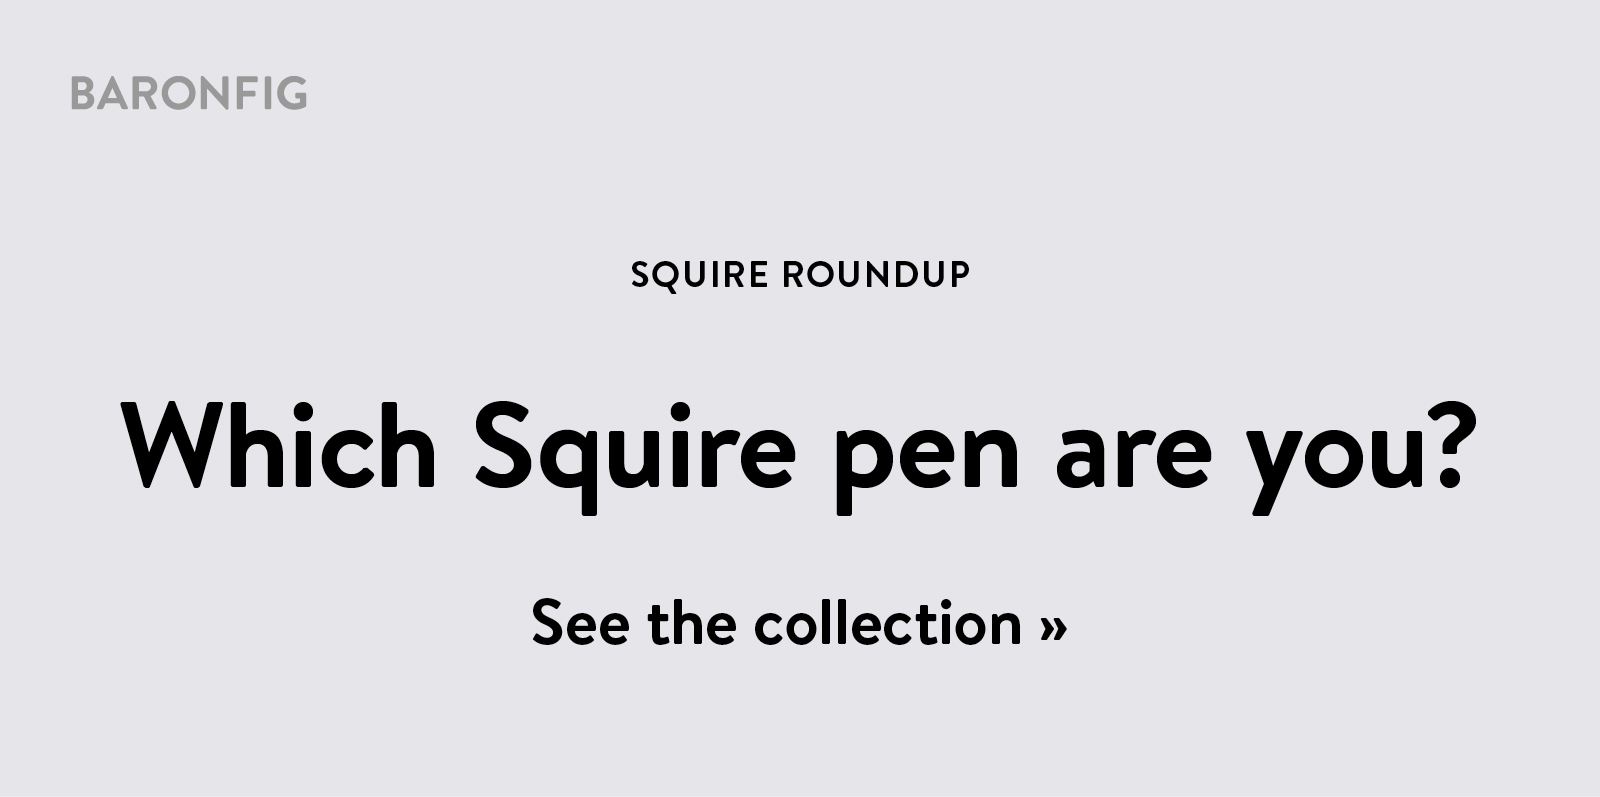 Squire Roundup. See the collection ?